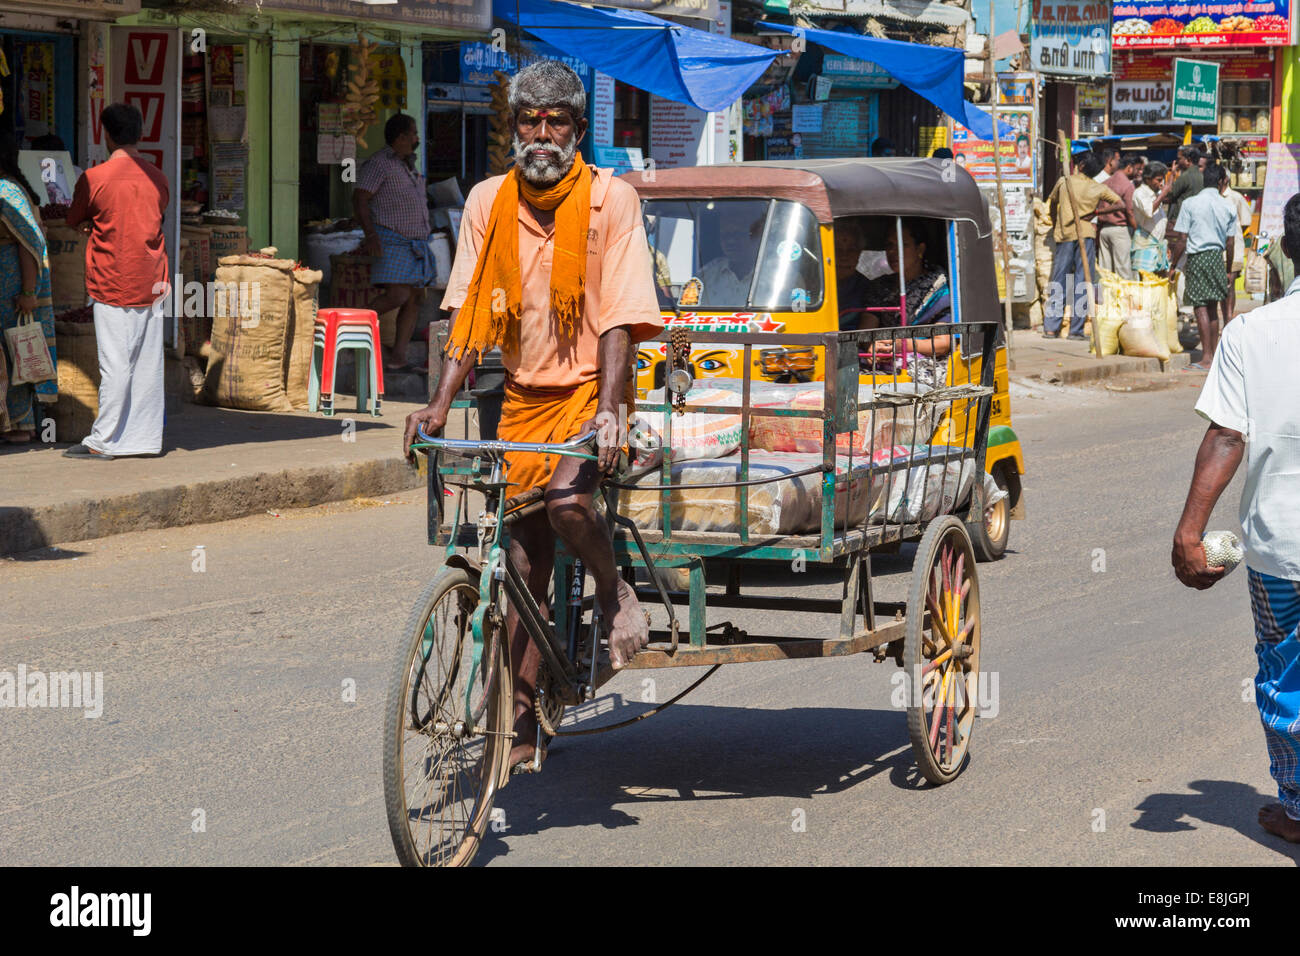 RICKSHAW DRIVER AND A LOAD OF HEAVY SACKS INDIA - Stock Image